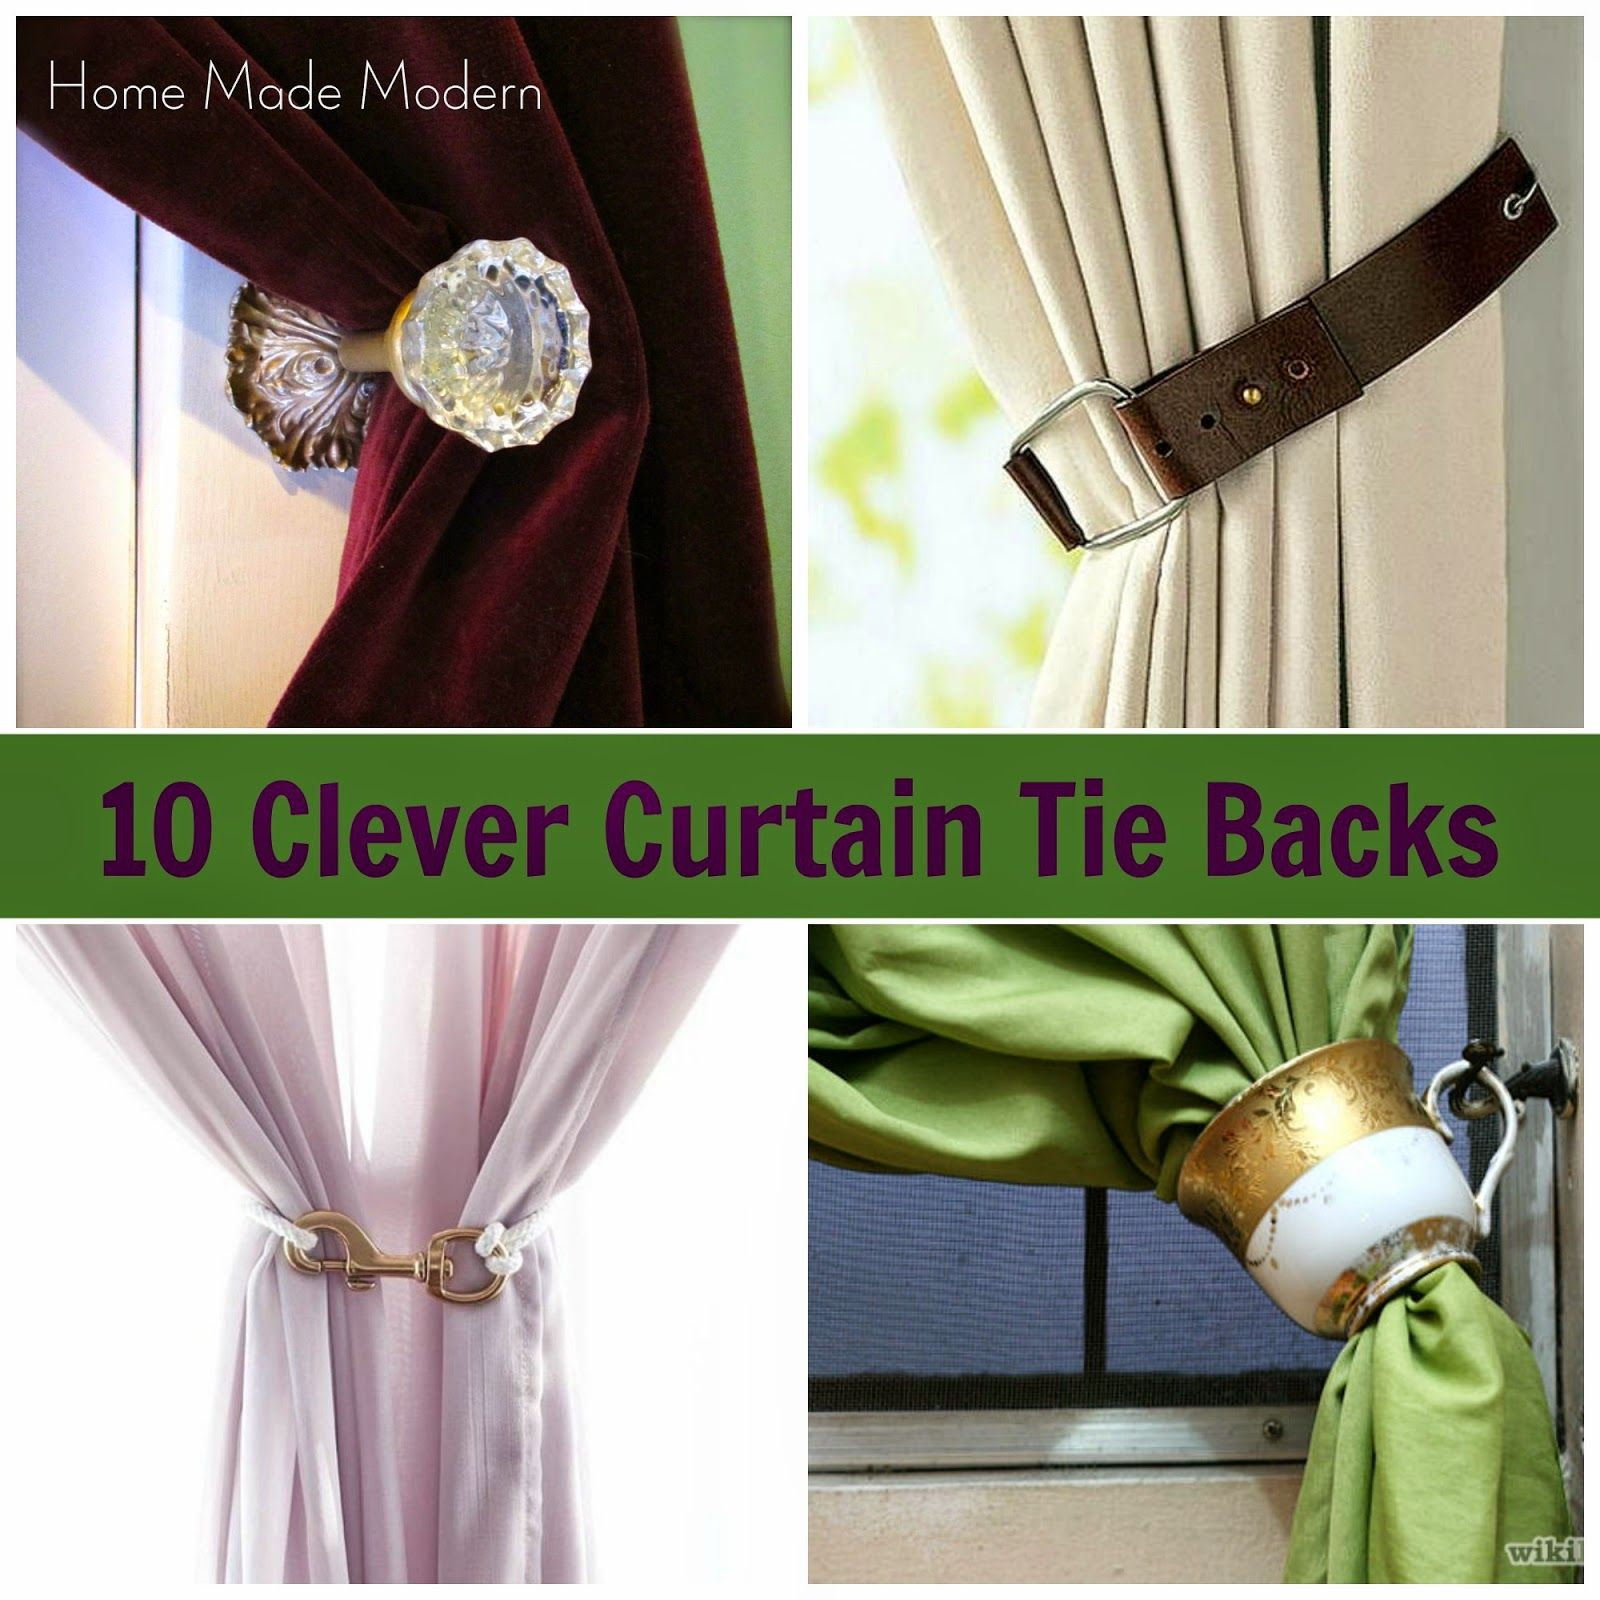 10 Clever Curtain Tie Backs Home Made Modern Curtain Tie Backs Curtain Tie Backs Diy Curtain Ties